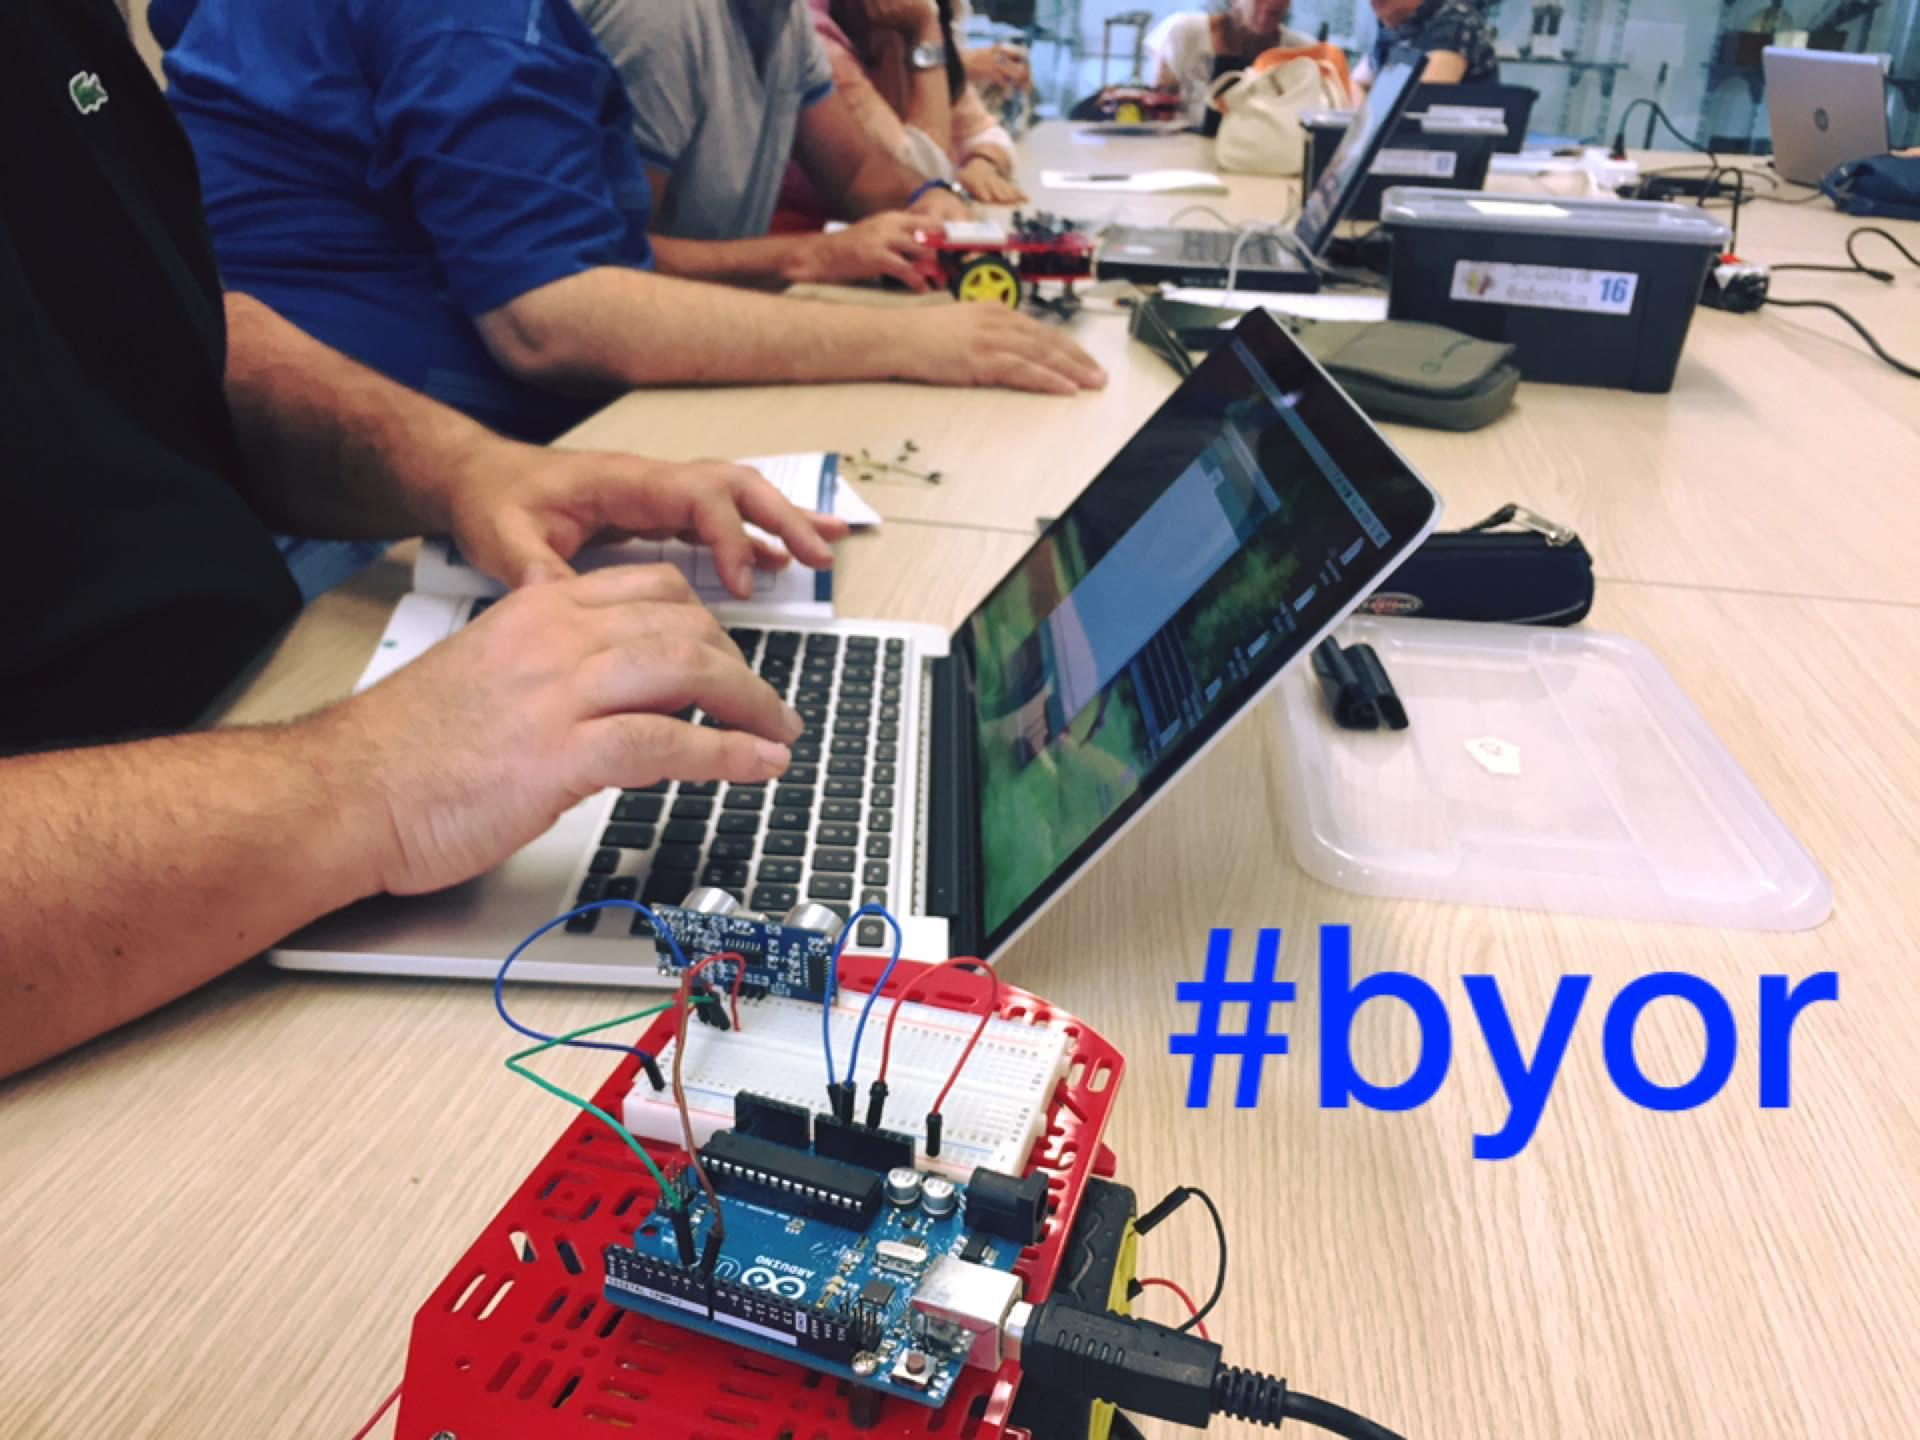 BYOR: Build Your Own Robot - Arduino in didactic